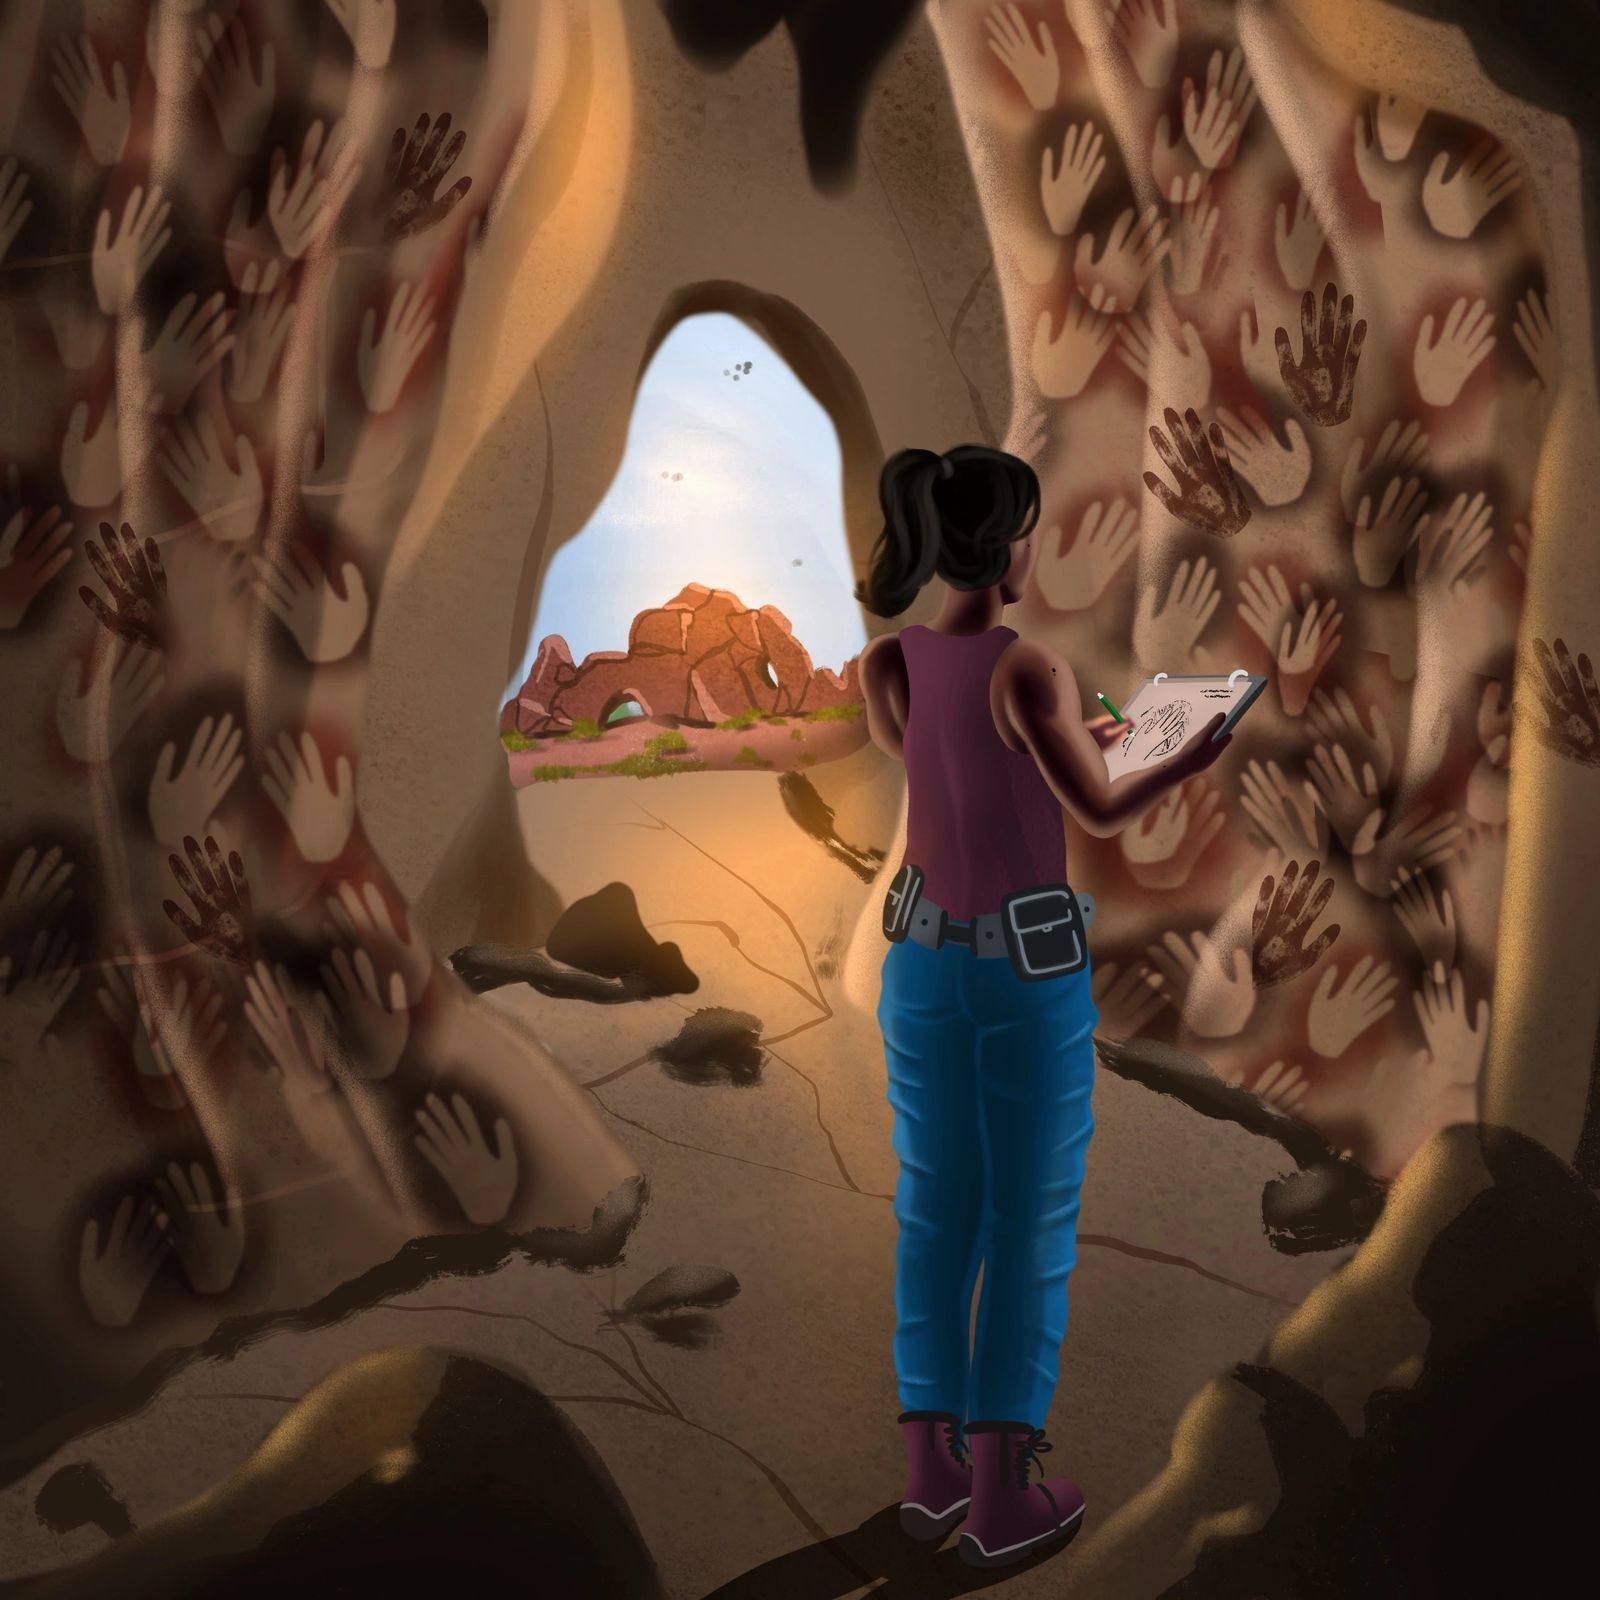 An illustration of a person sketching hand stencils in a cave